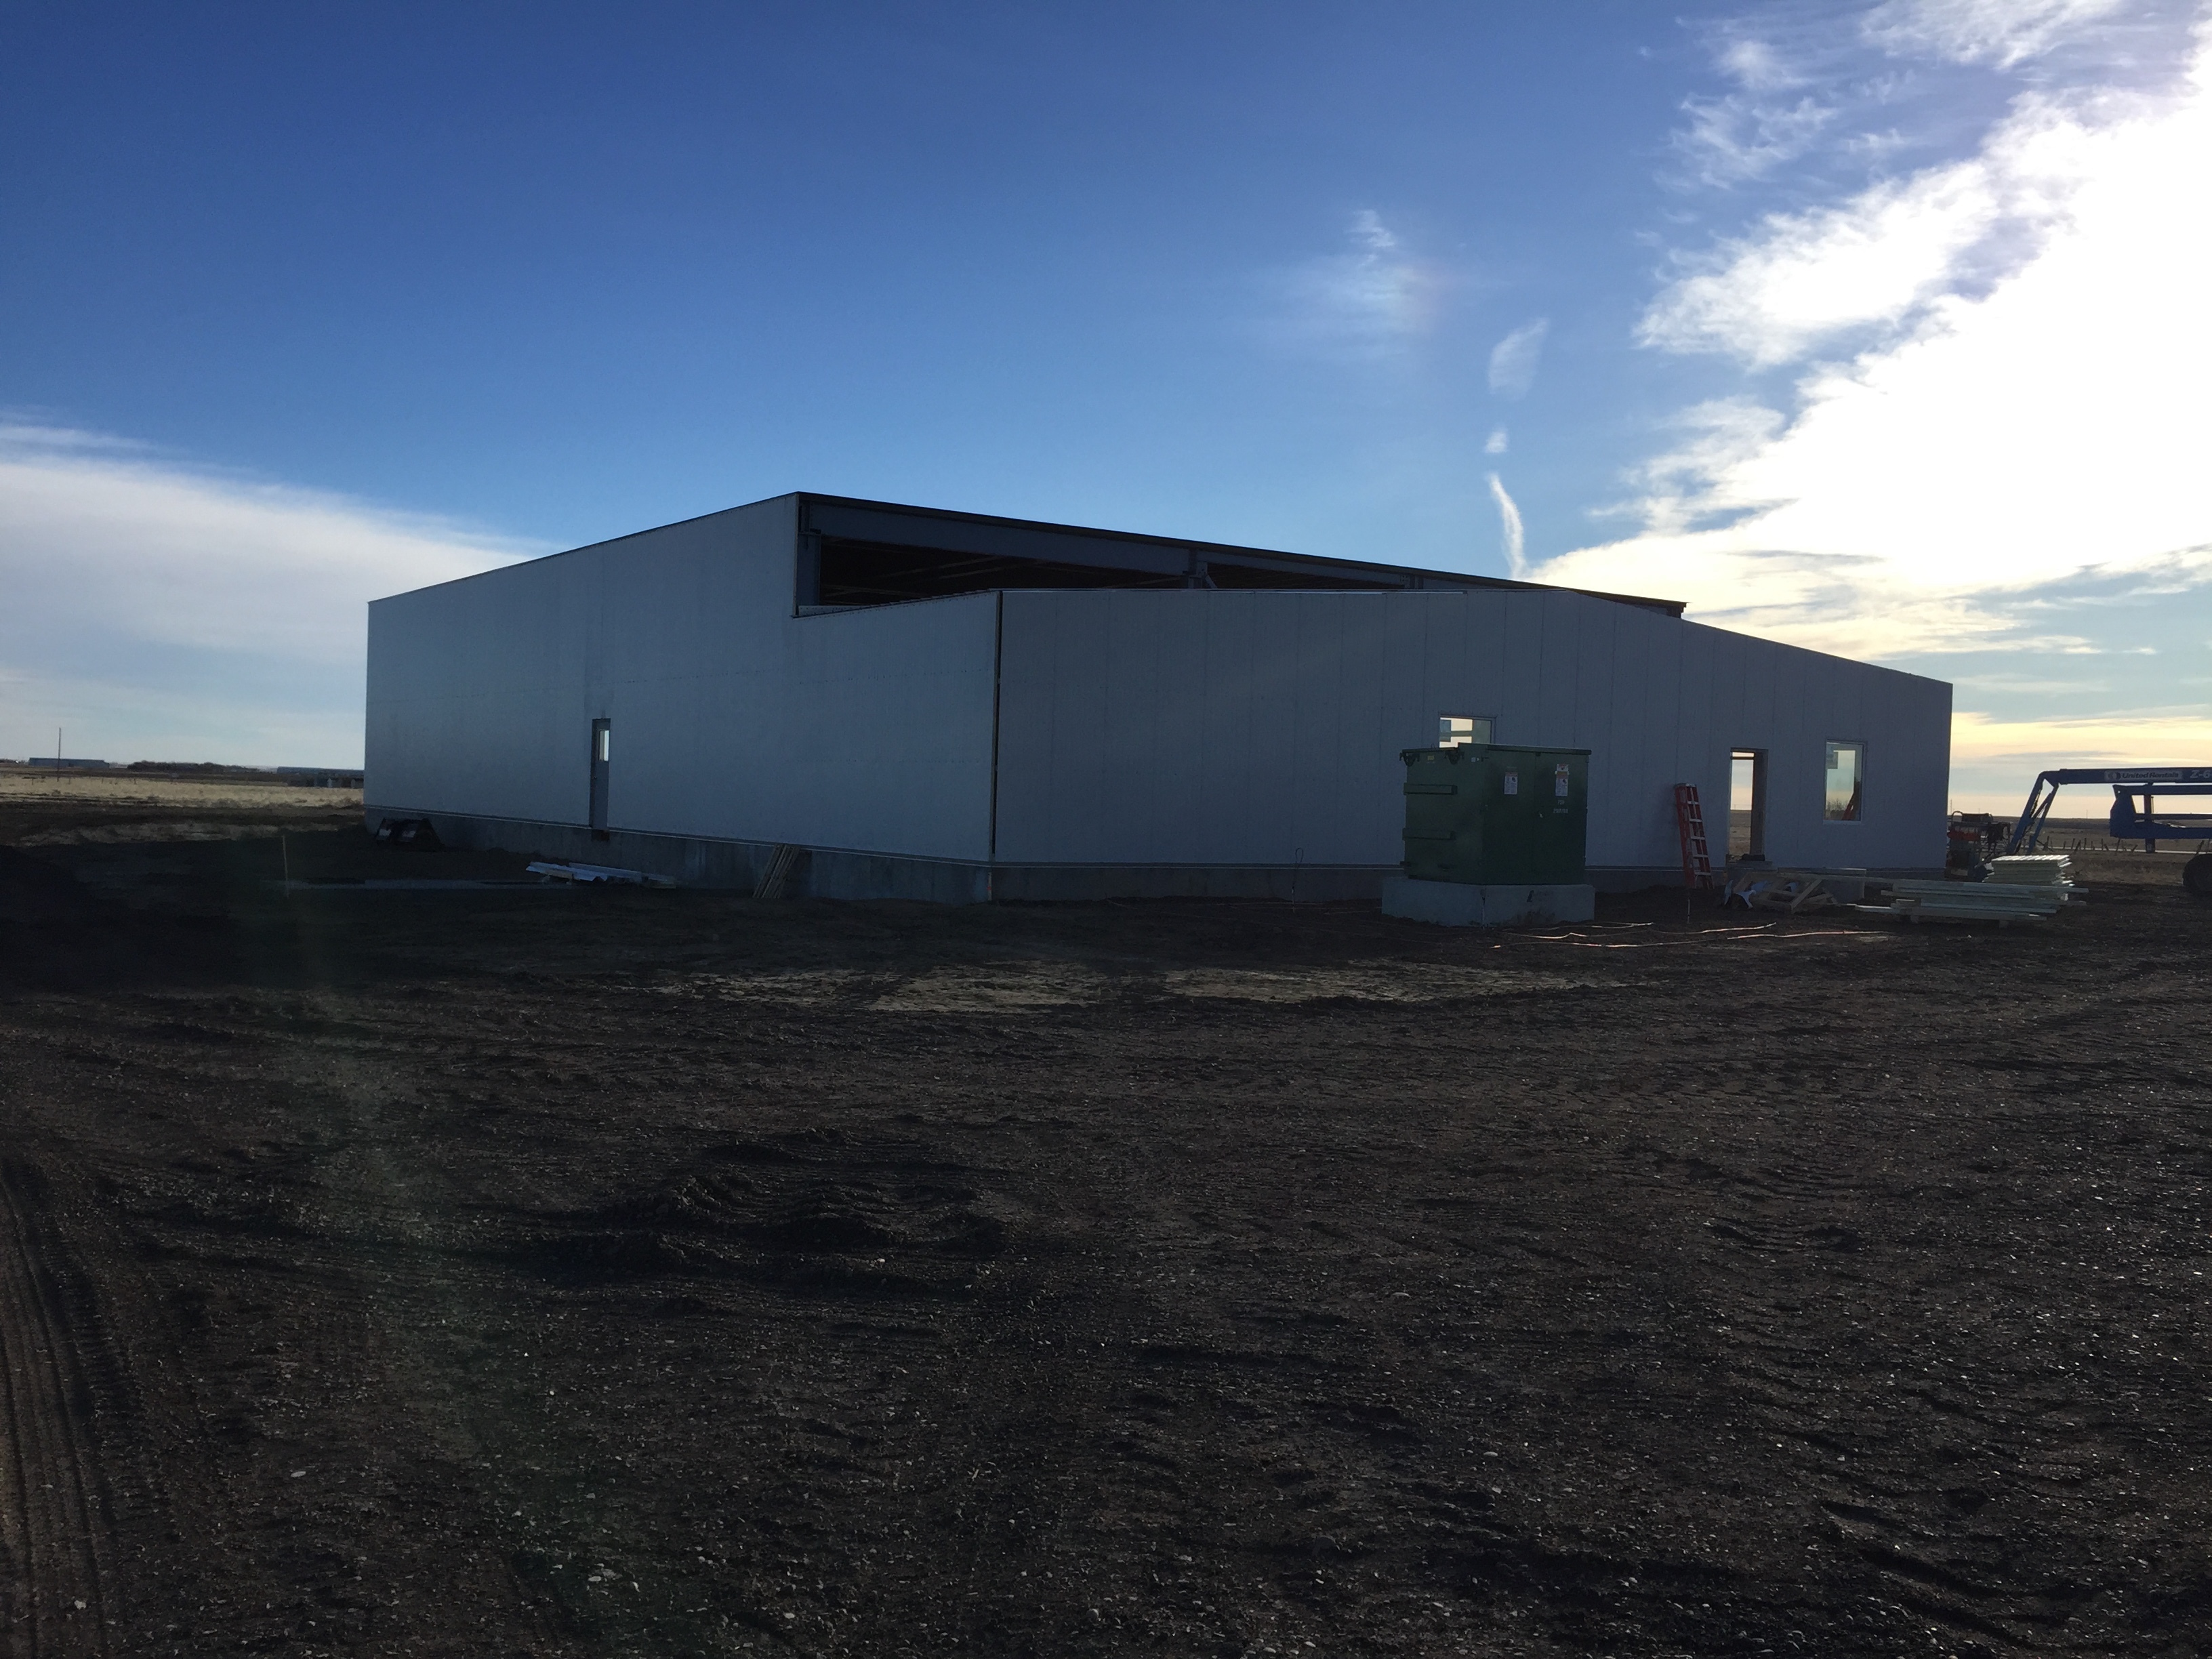 Taber Builds New Seed Processing Plant In Grassy Lake, AB